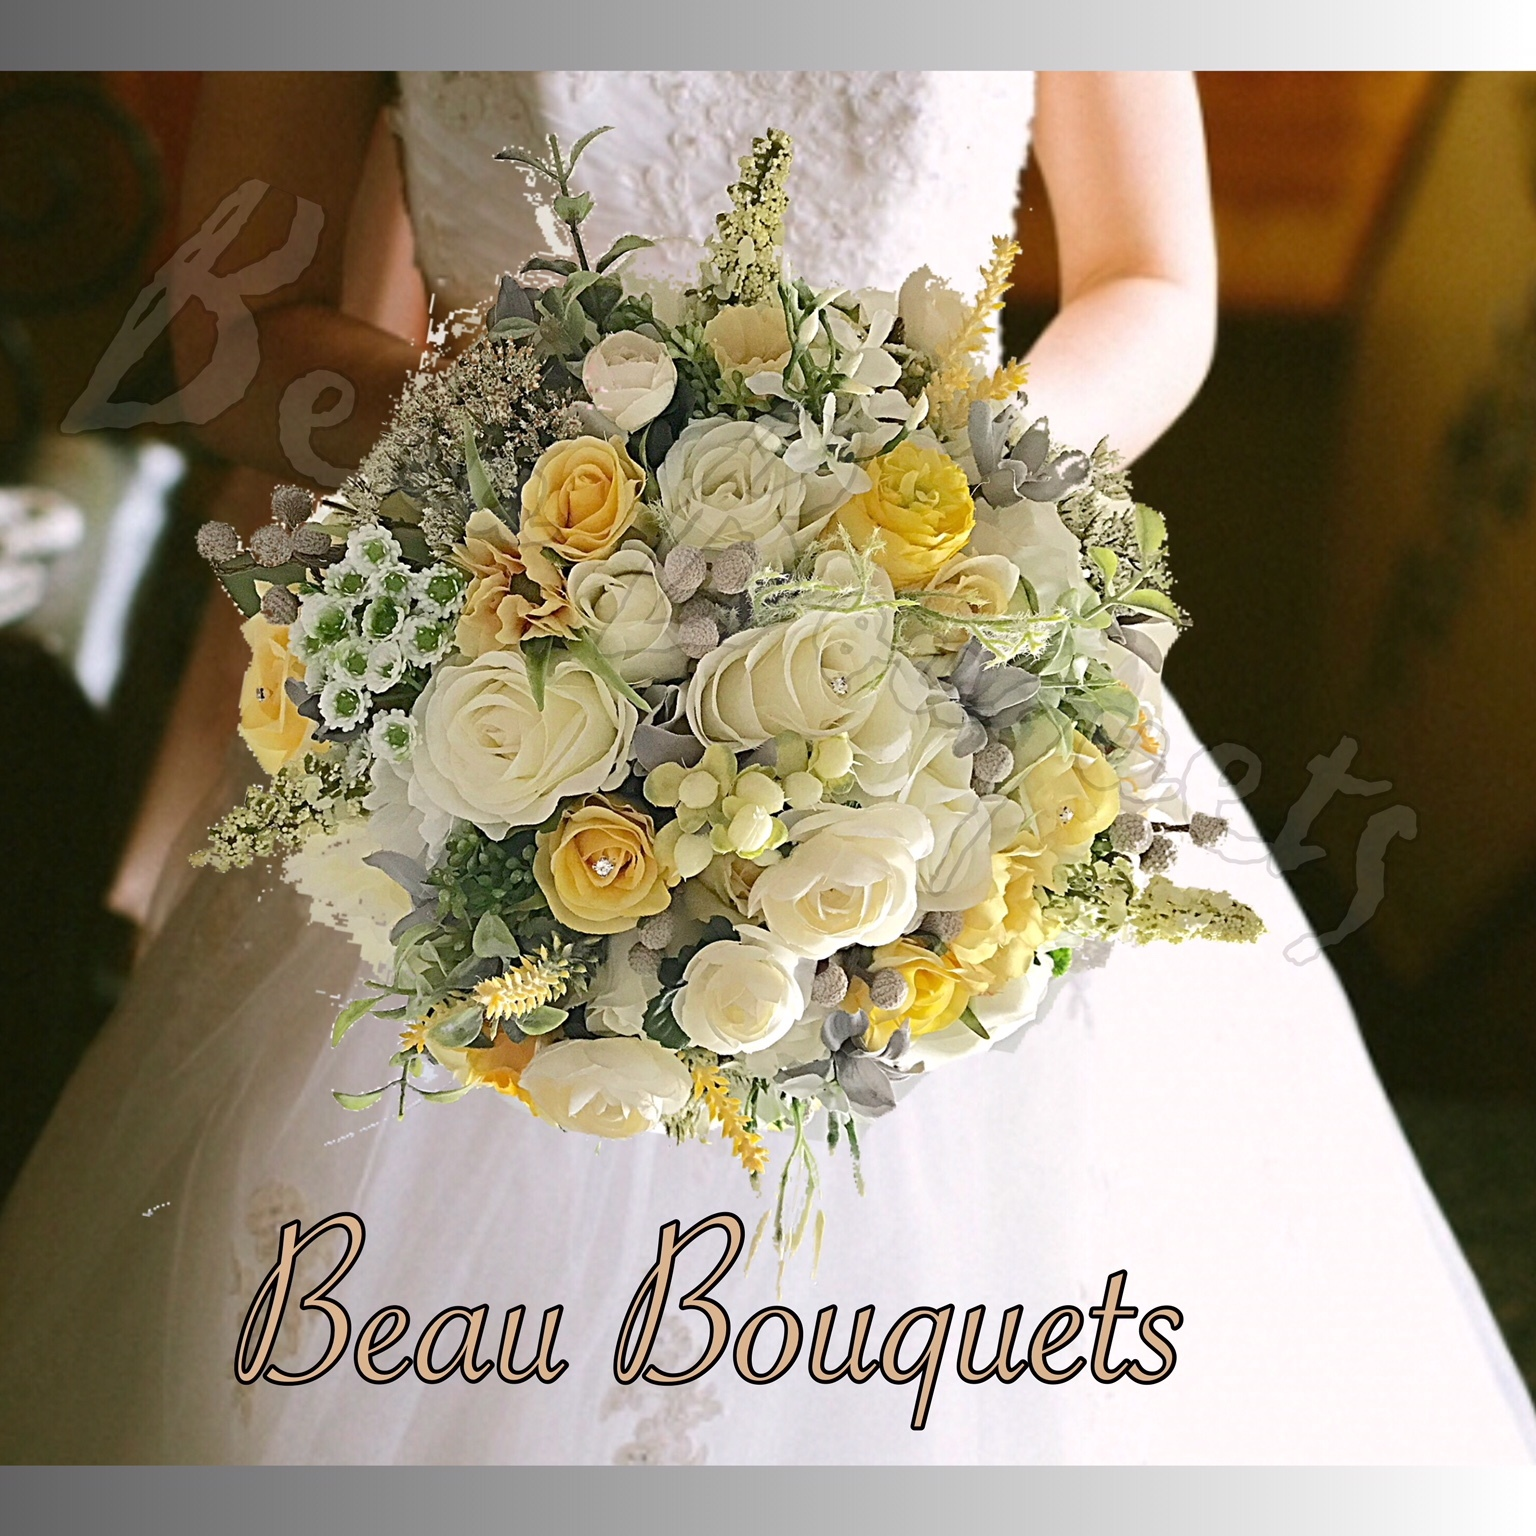 JUBILATION - LARGE BRIDE BOUQUET ROSES YELLOW LEMON IVORY with Roses, ranunculous, brunia, Queen Annes Lace, lavender, ruscus & dusky foliage. In lemon yellows, Ivory and subtle grey touches.  Diamantes & pearls in  each flower